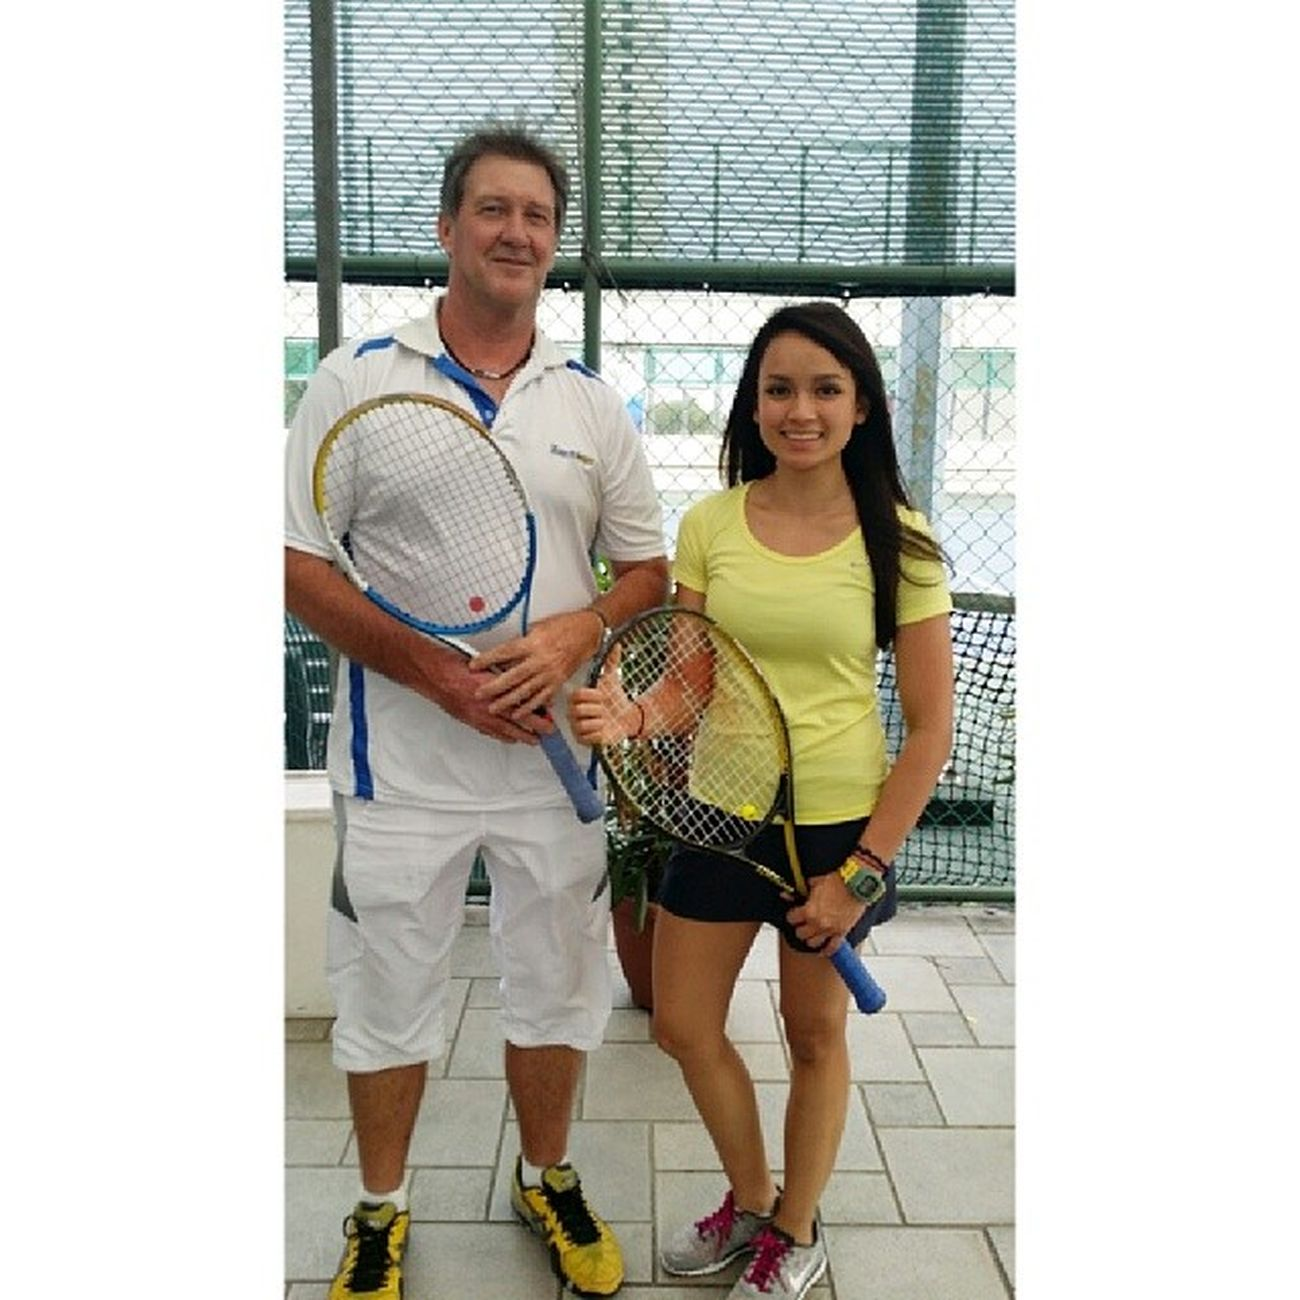 move over Serena? haha. well this is coach Chris from map sports.com one of the many that would tolerate my shit.